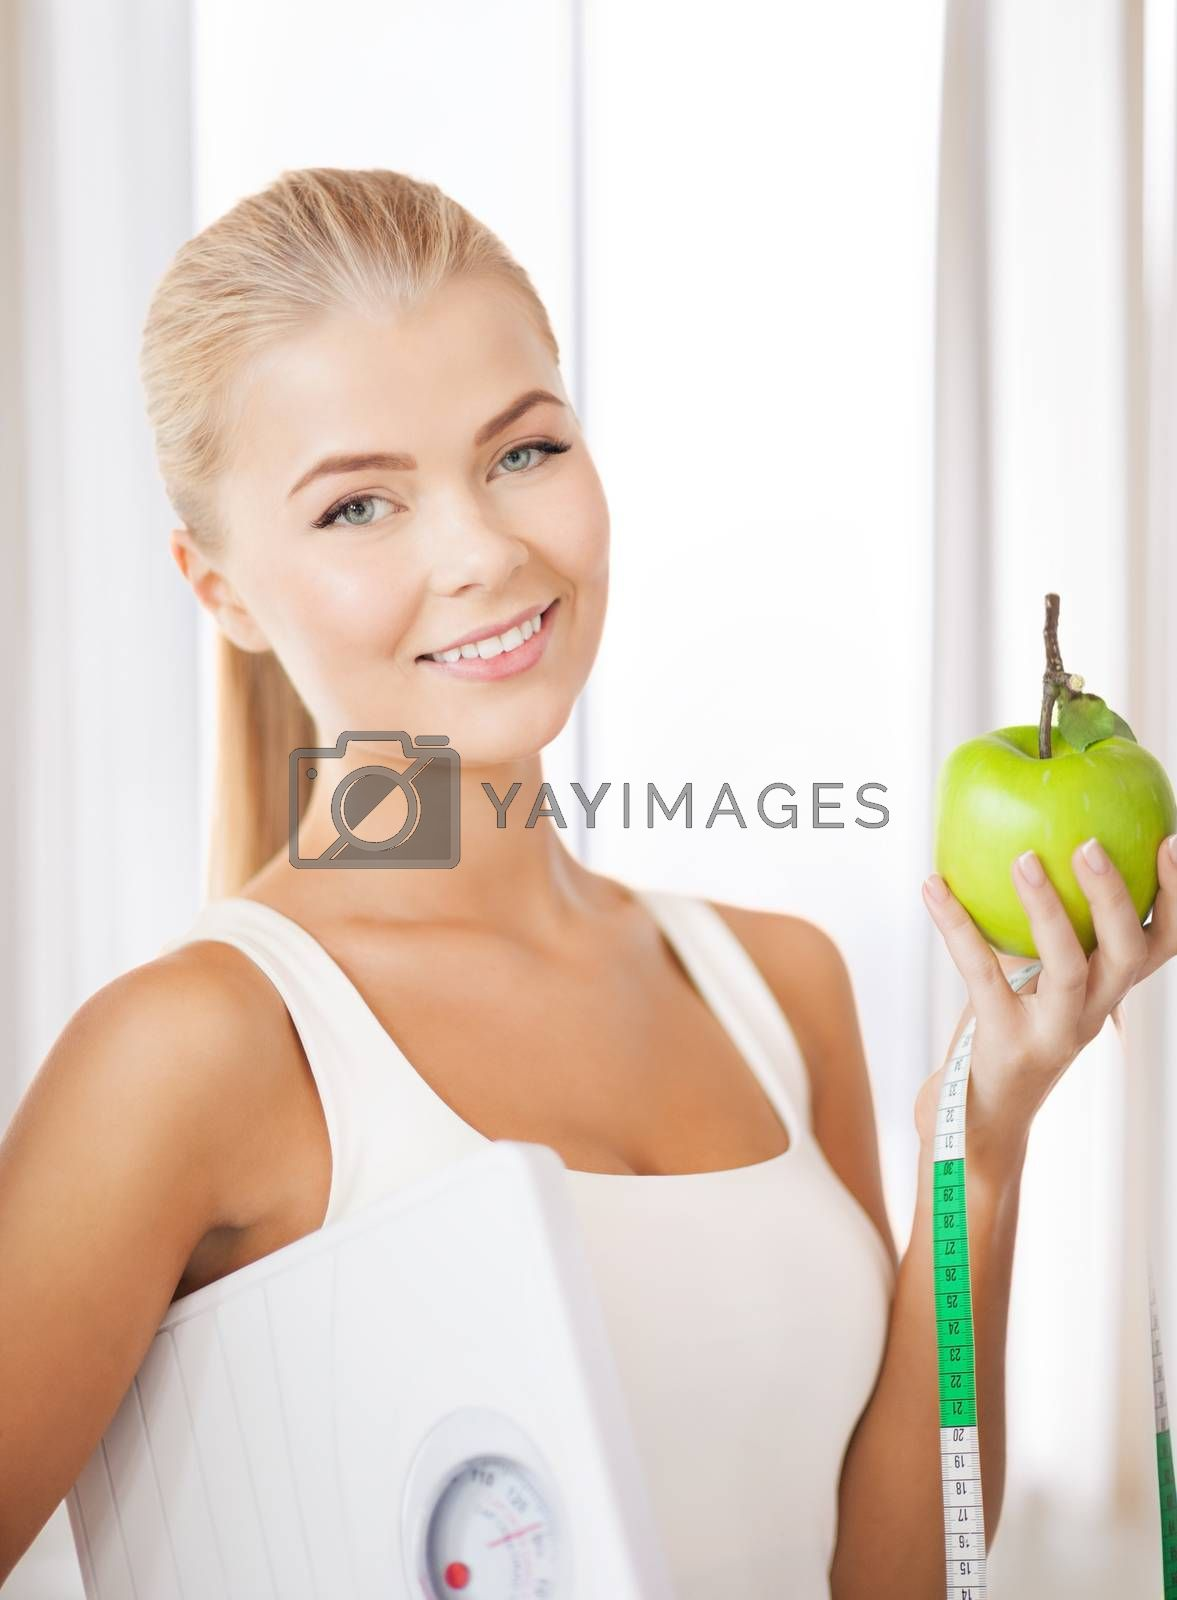 sporty woman with scale, apple and measuring tape by dolgachov